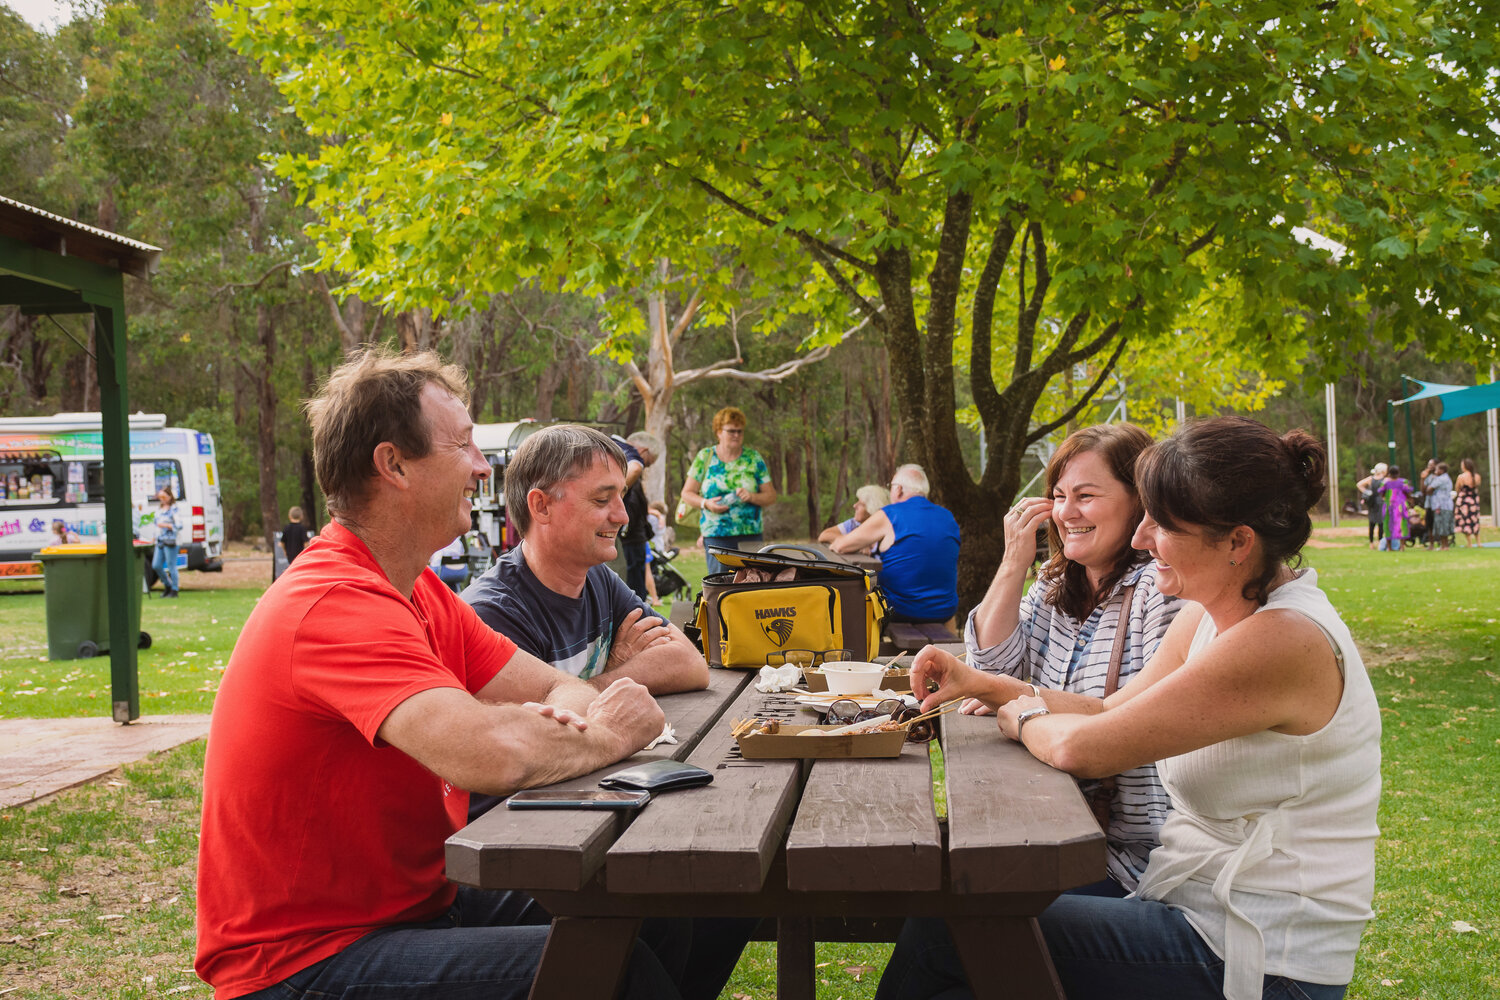 Four adults sitting at a picnic table enjoying some food